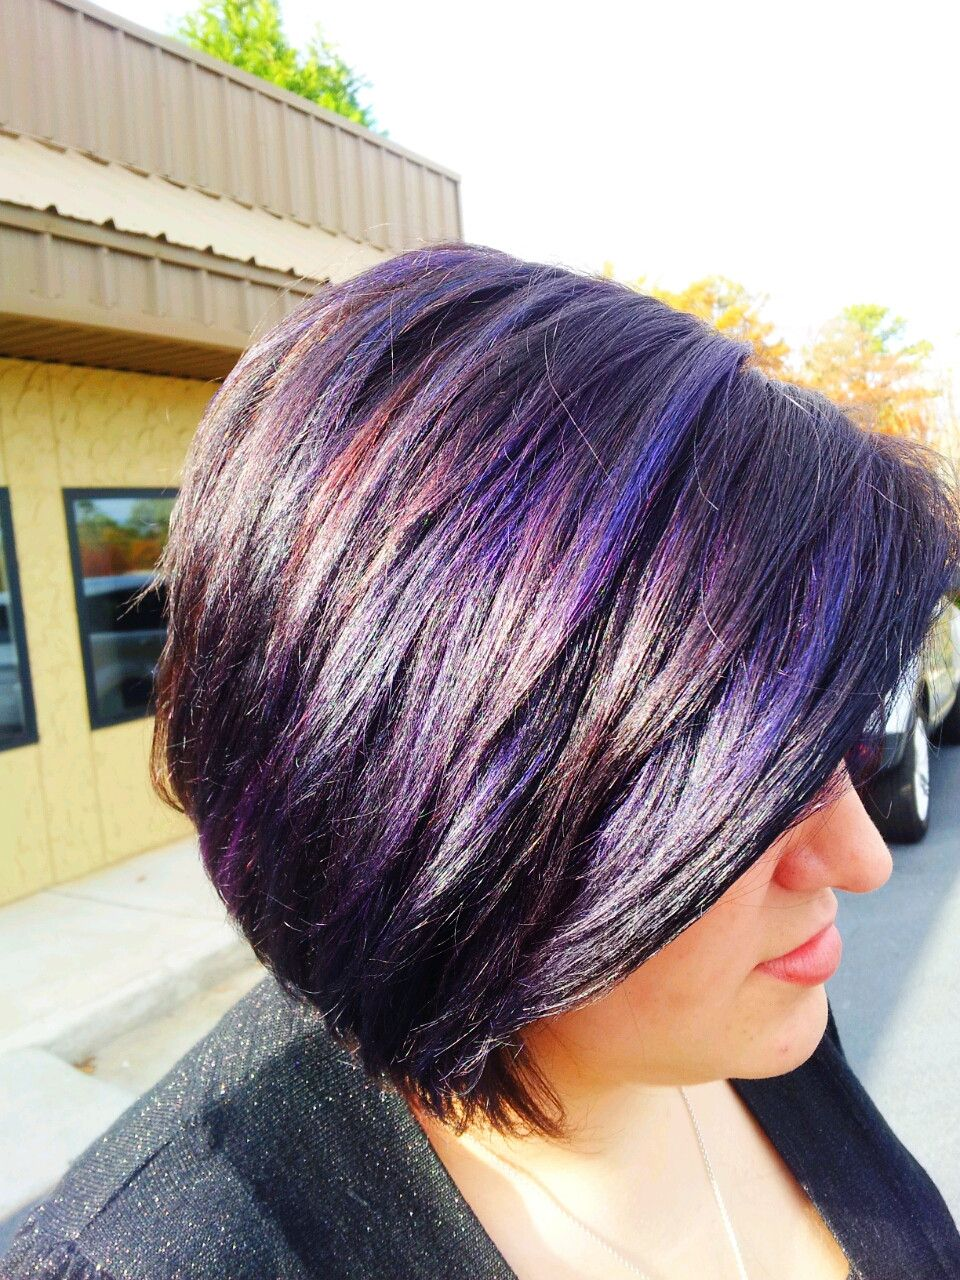 Purple Highlights Done By A Professional Me I Am Working To Get Those Of You Who I Know Are Professionals Out There In The Ff World To Network And Share